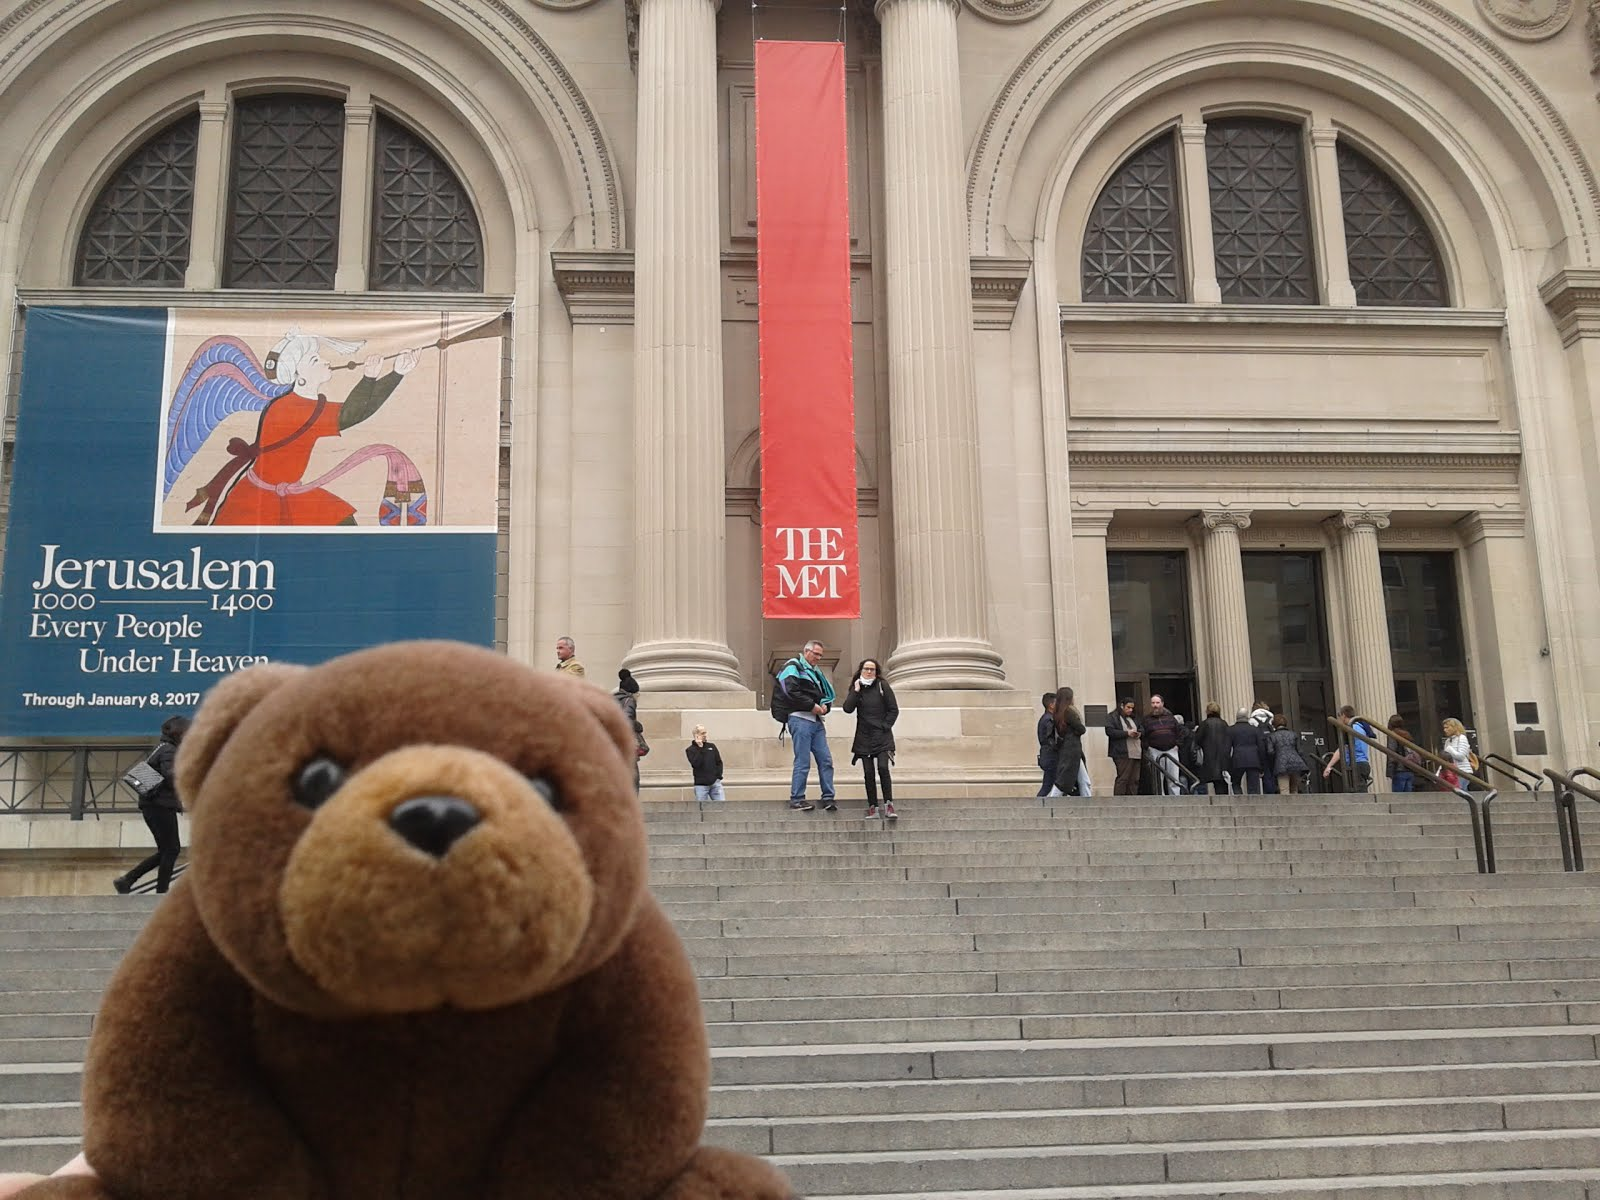 Teddy in front of The Met, New York